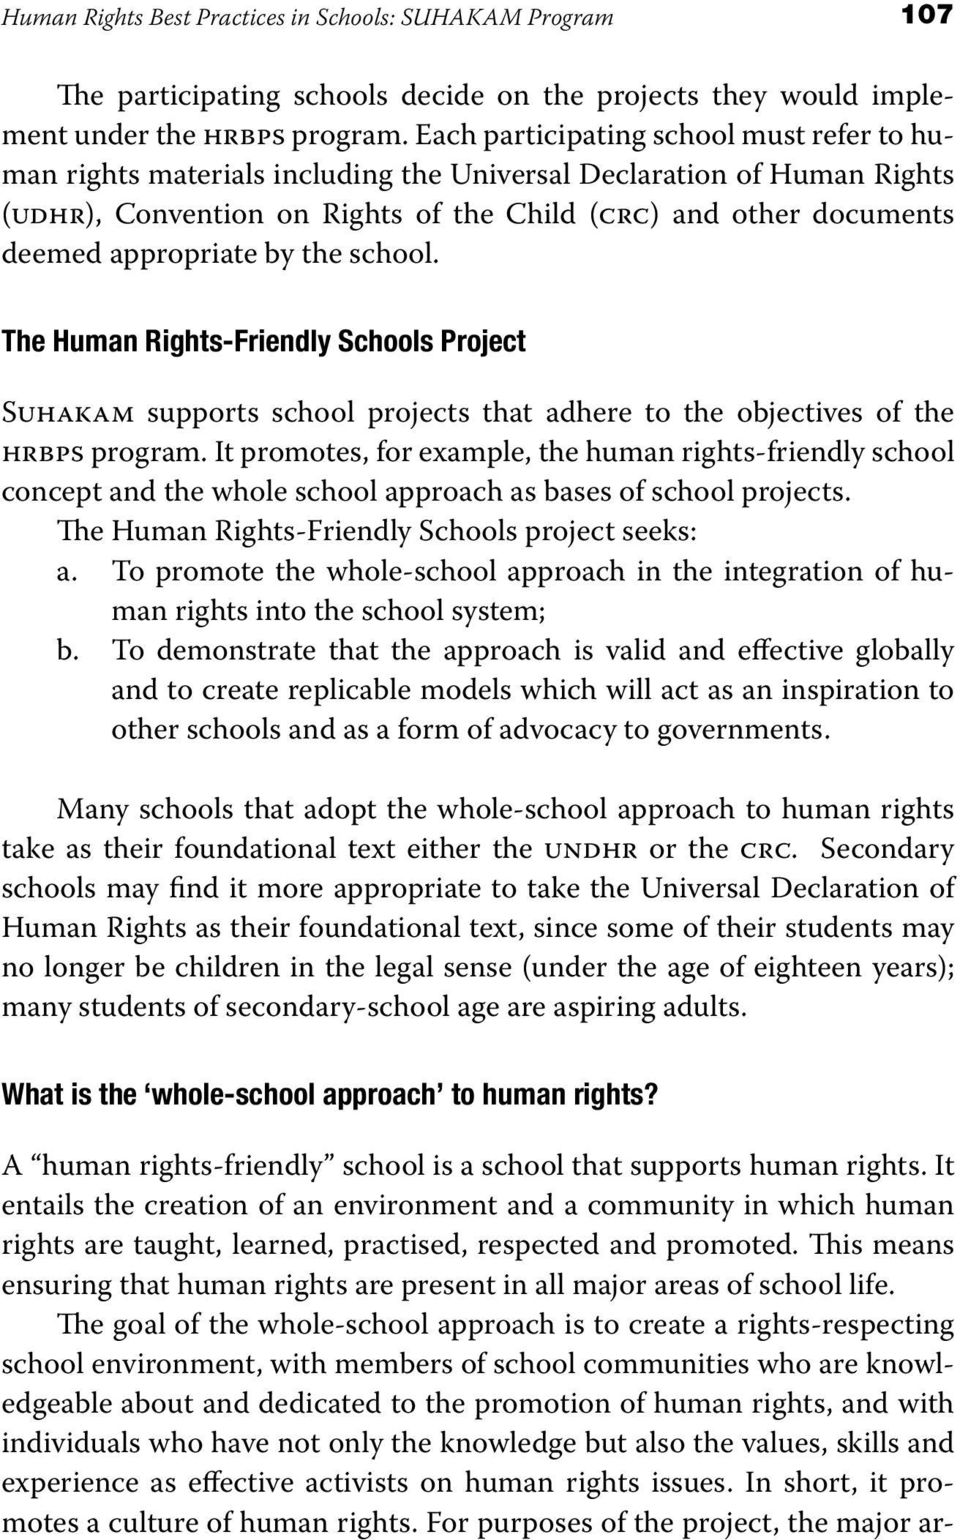 appropriate by the school. The Human Rights-Friendly Schools Project Suhakam supports school projects that adhere to the objectives of the hrbps program.